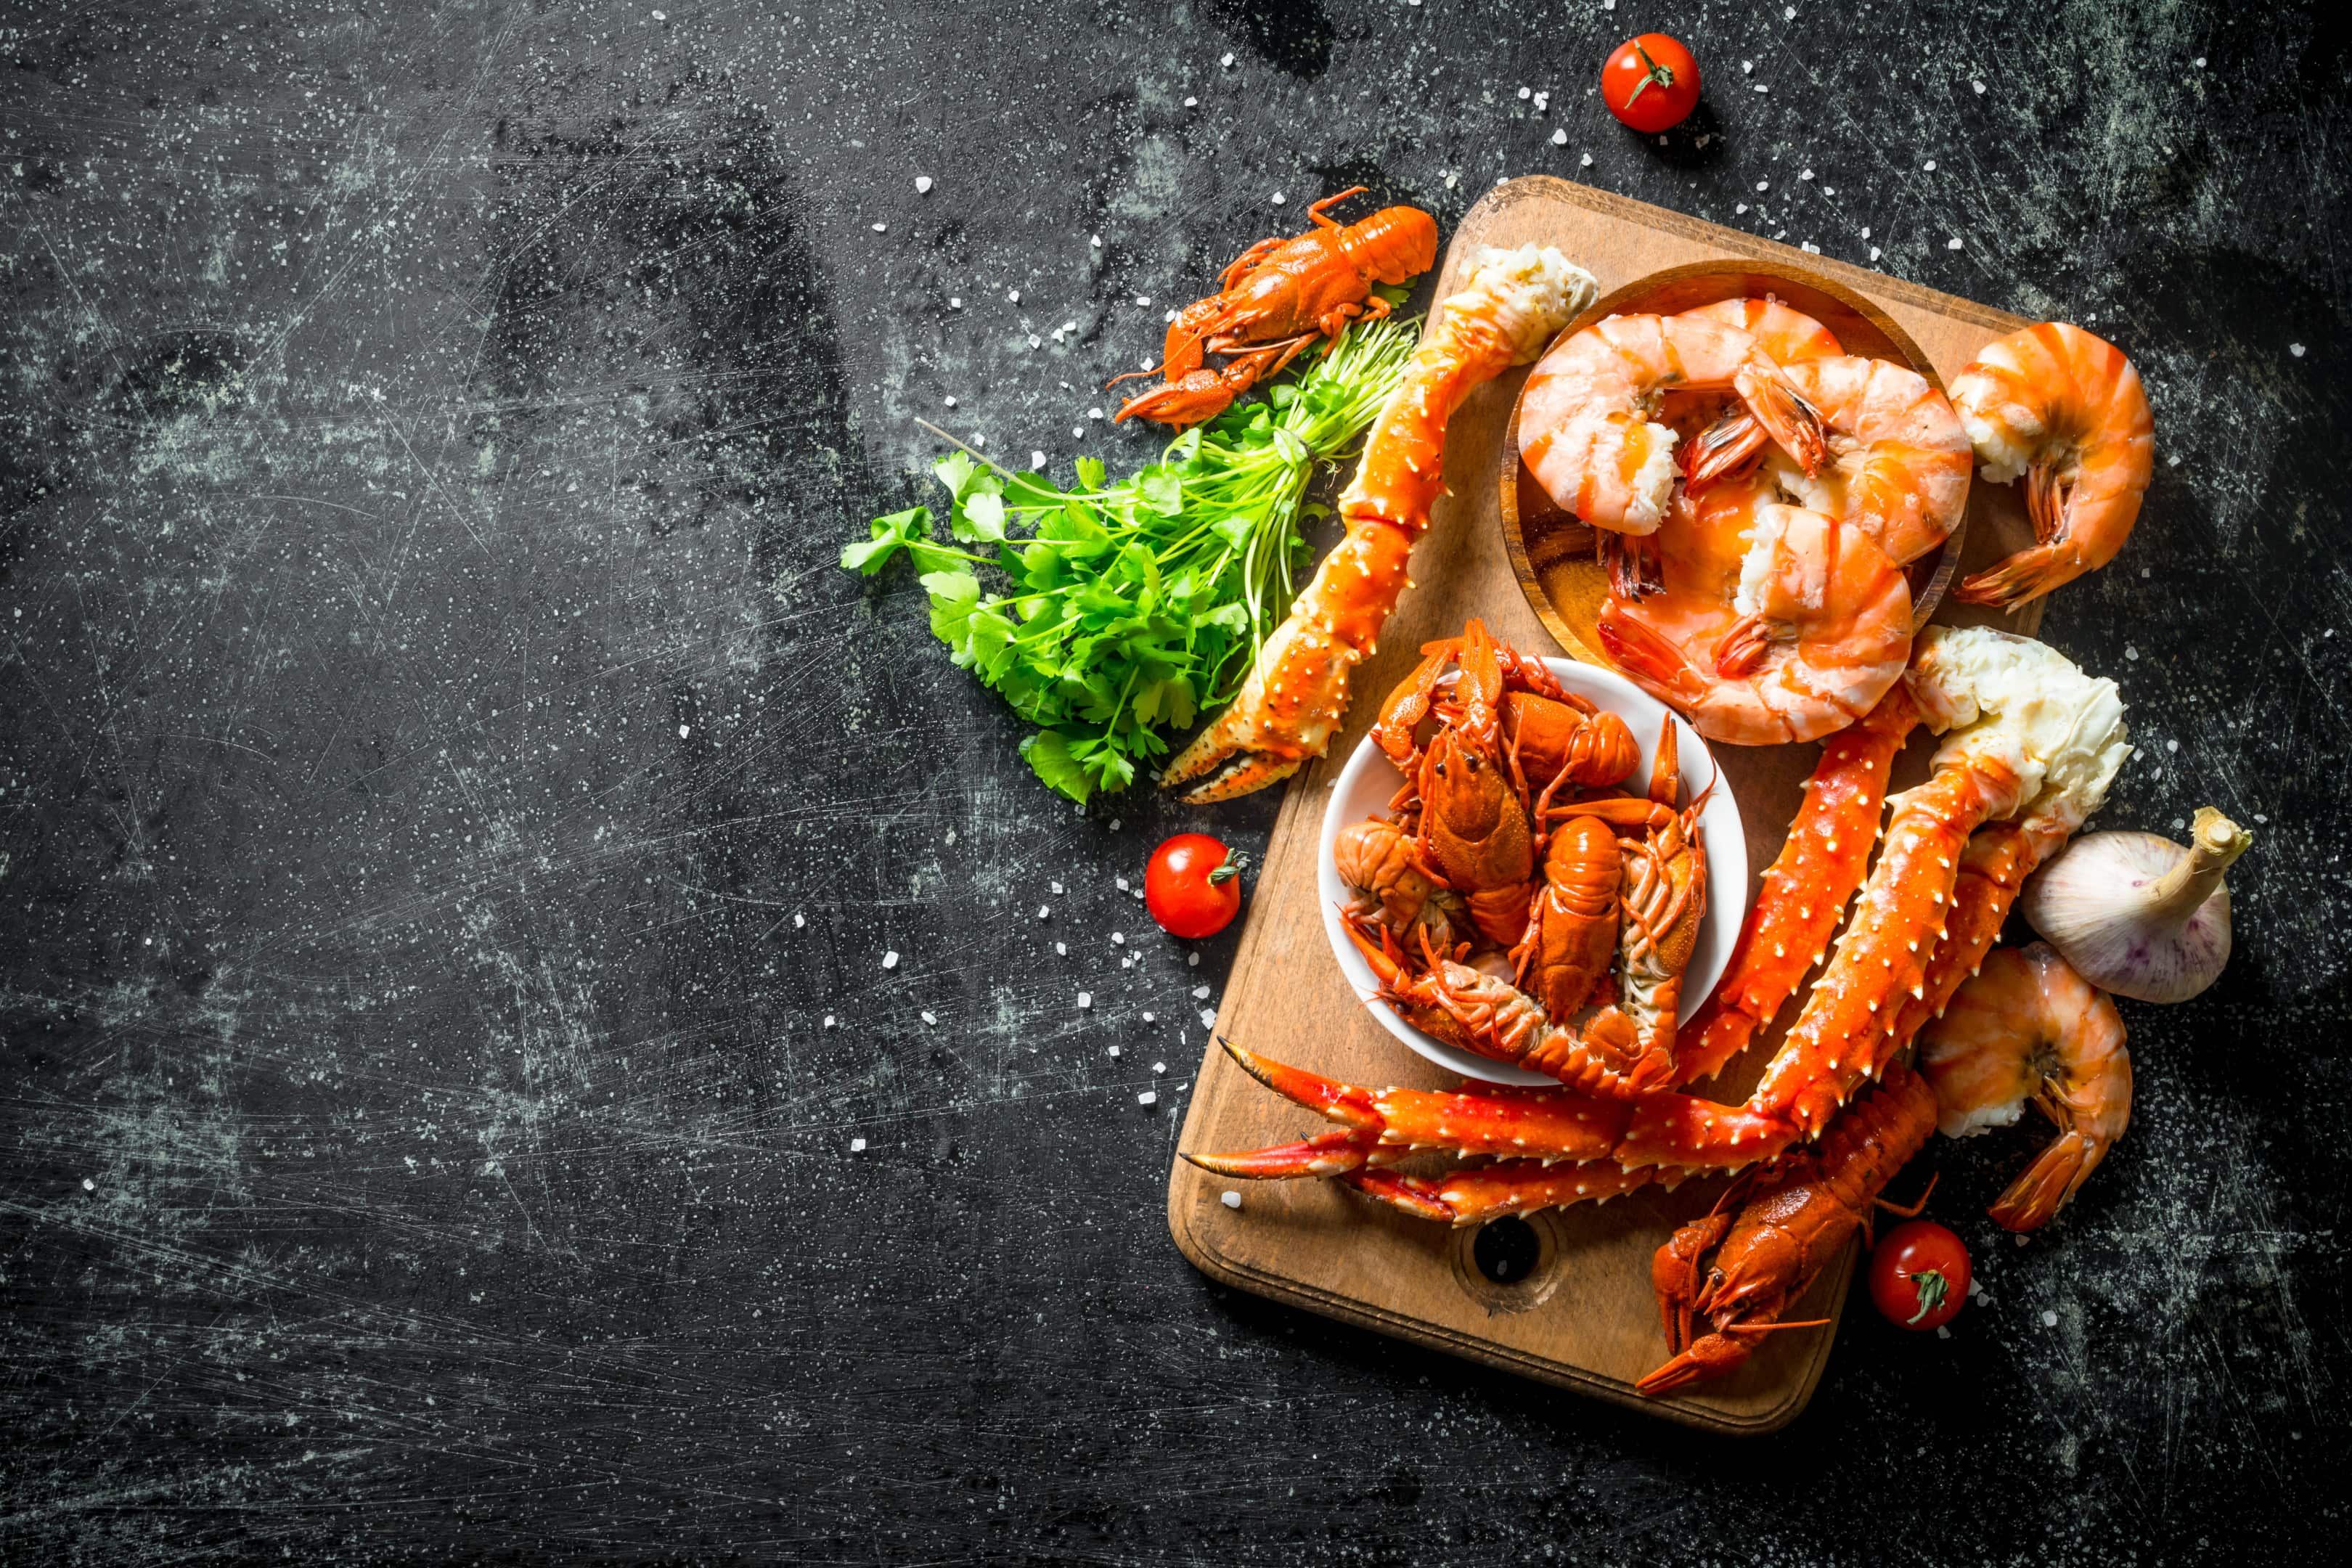 Seafood fragrant shrimp crayfish and crab on wooden board with herbs